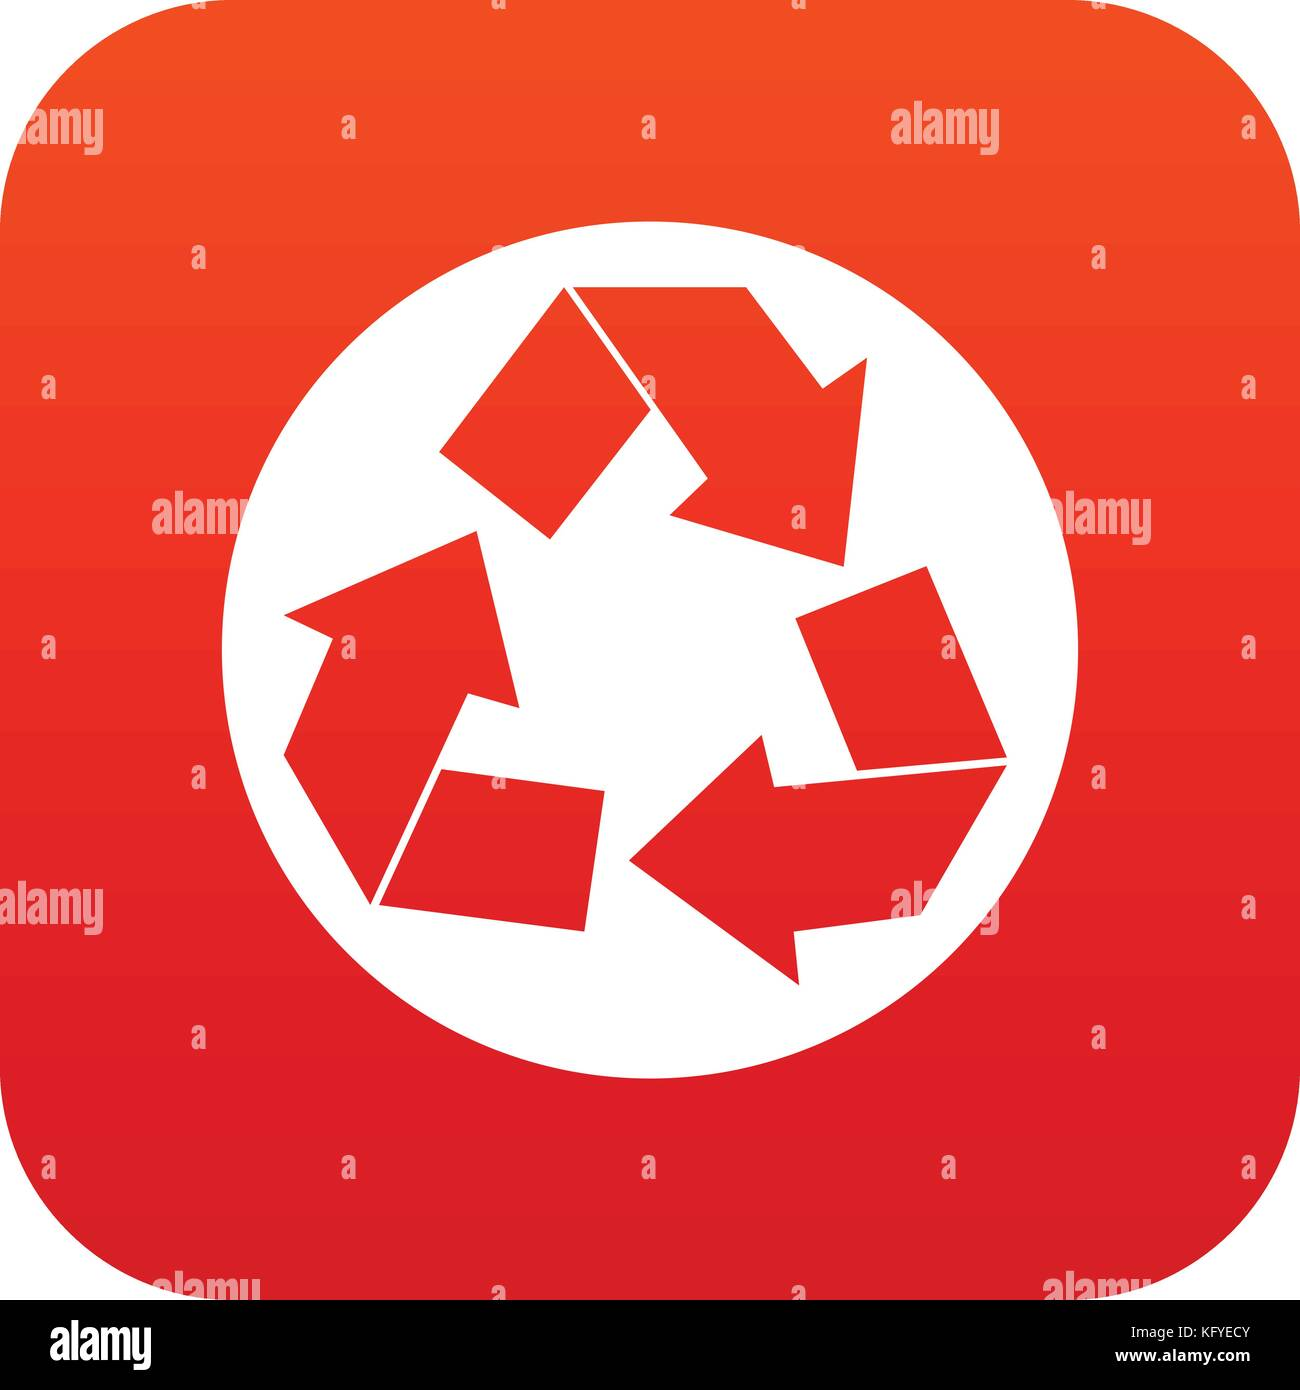 Recyclable symbol stock photos recyclable symbol stock images recycle sign icon digital red stock image buycottarizona Choice Image